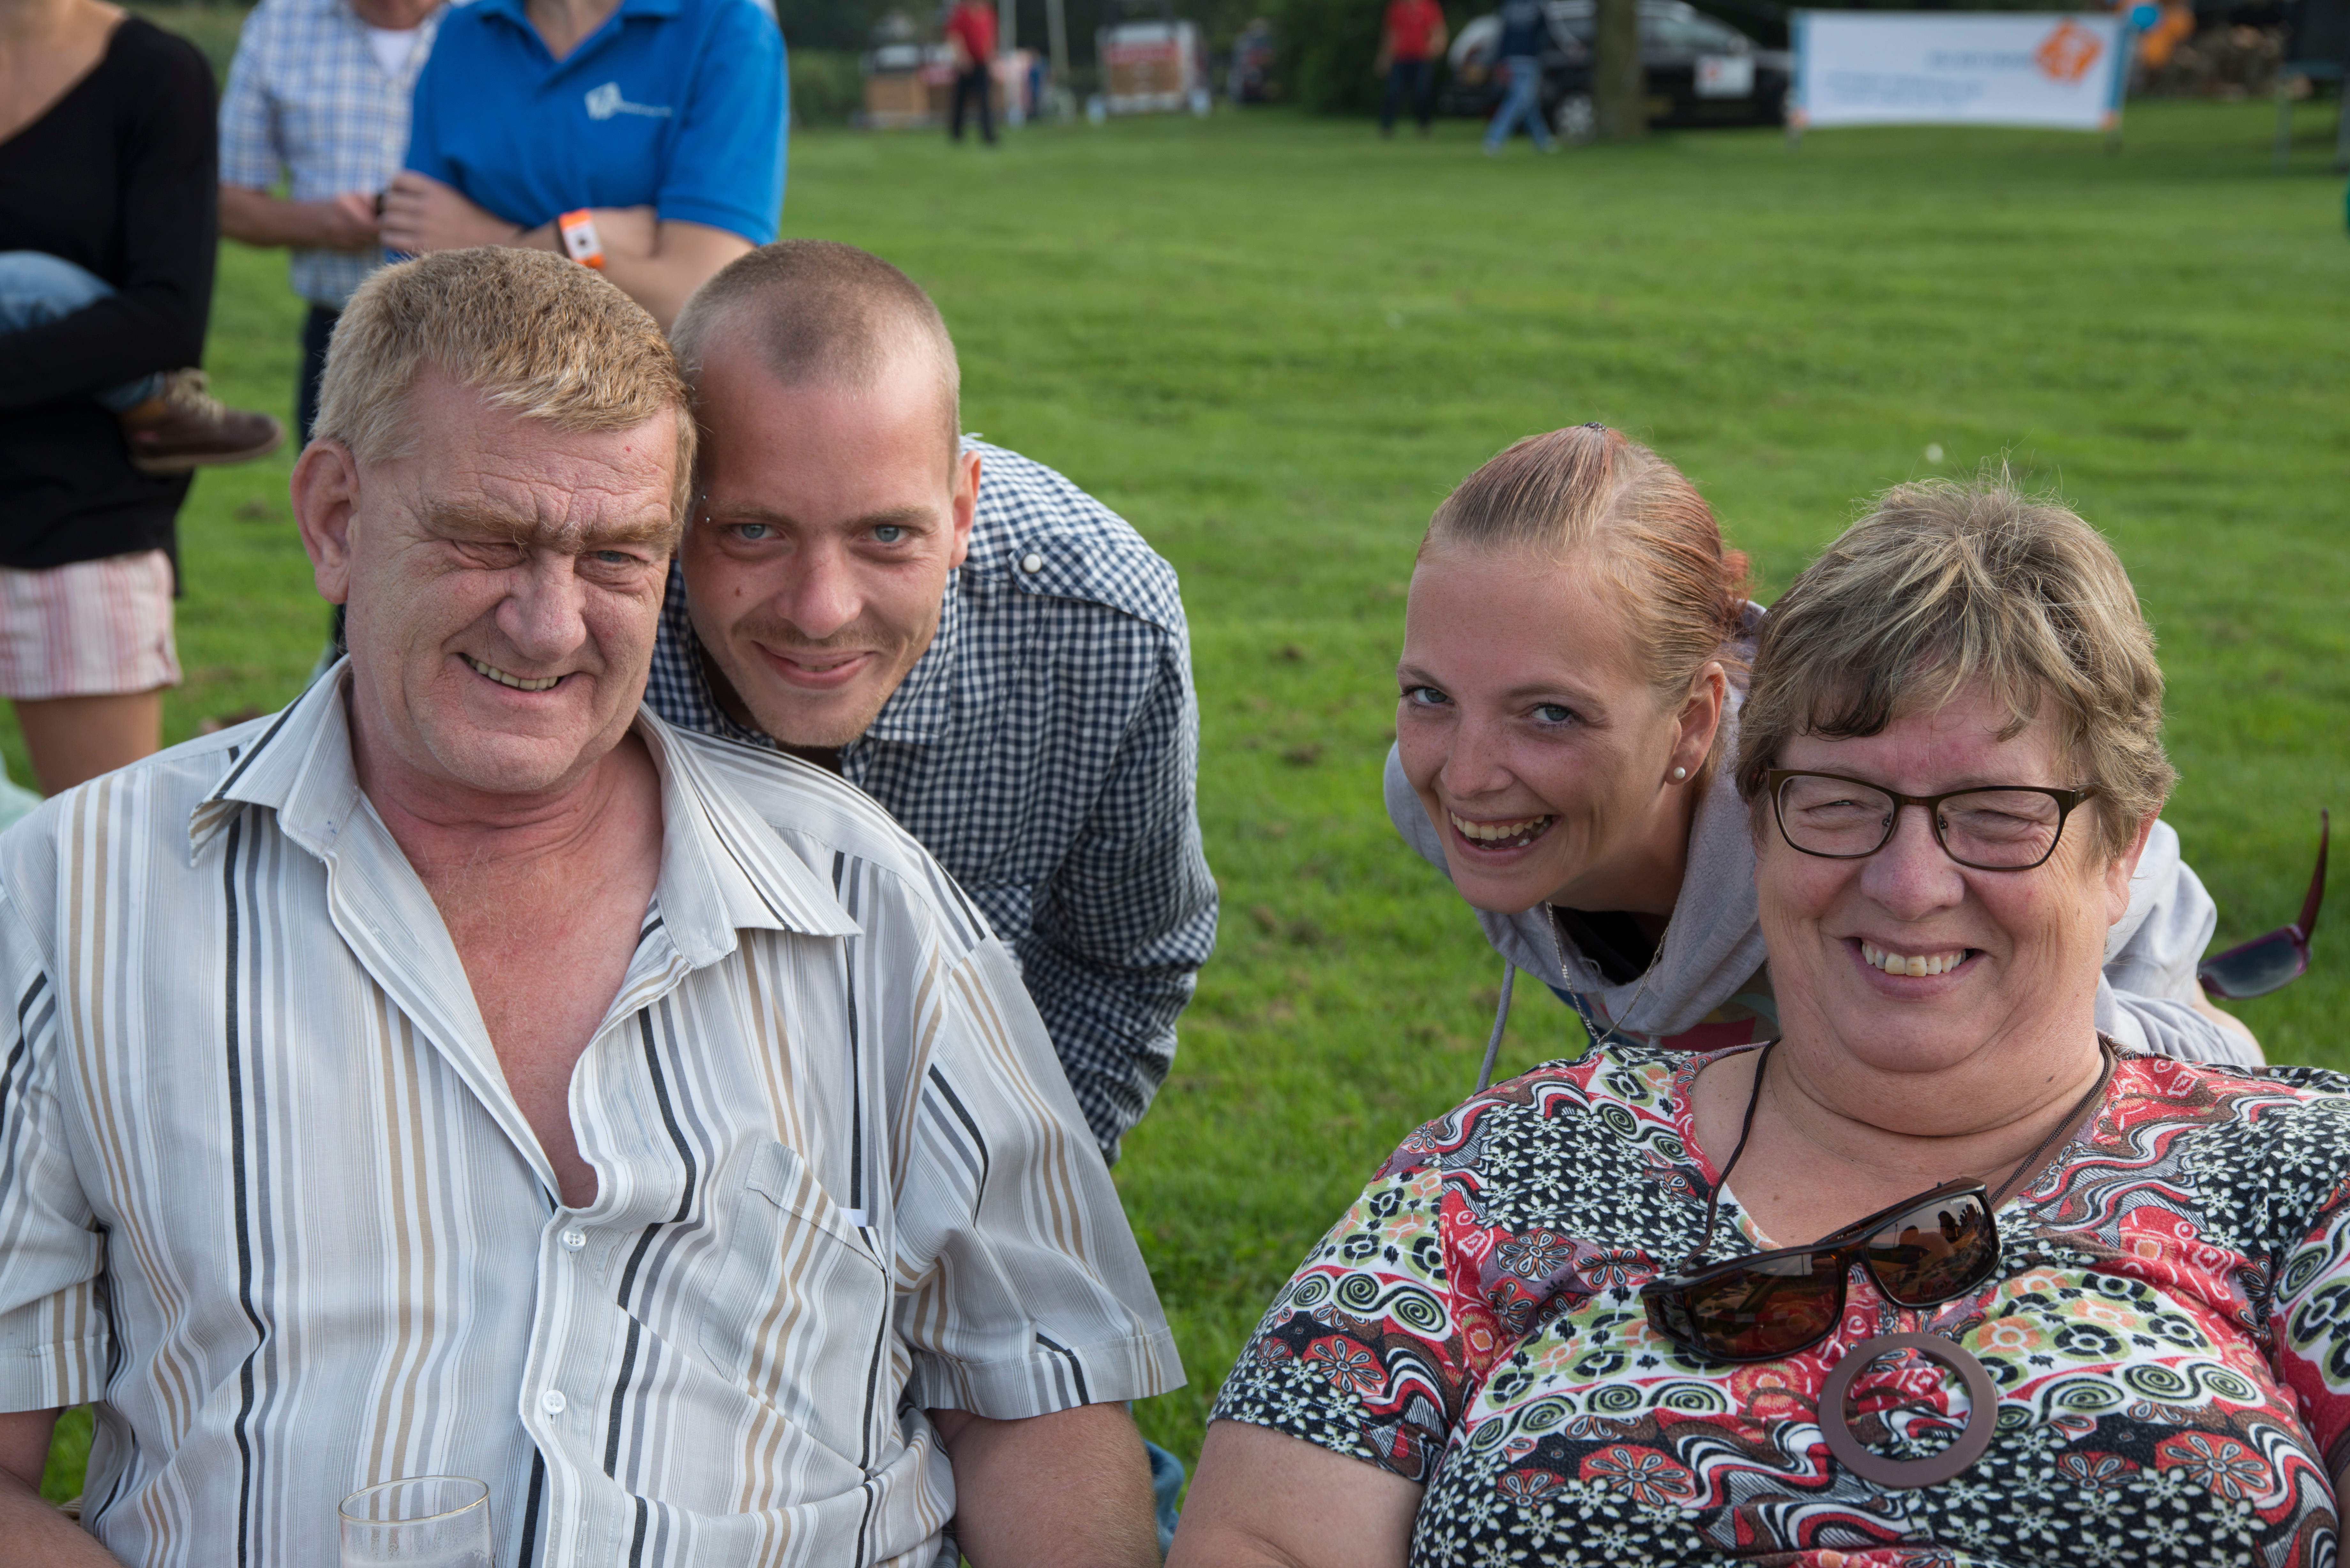 Topsport for Life - Zomerfeest 2014 - 14